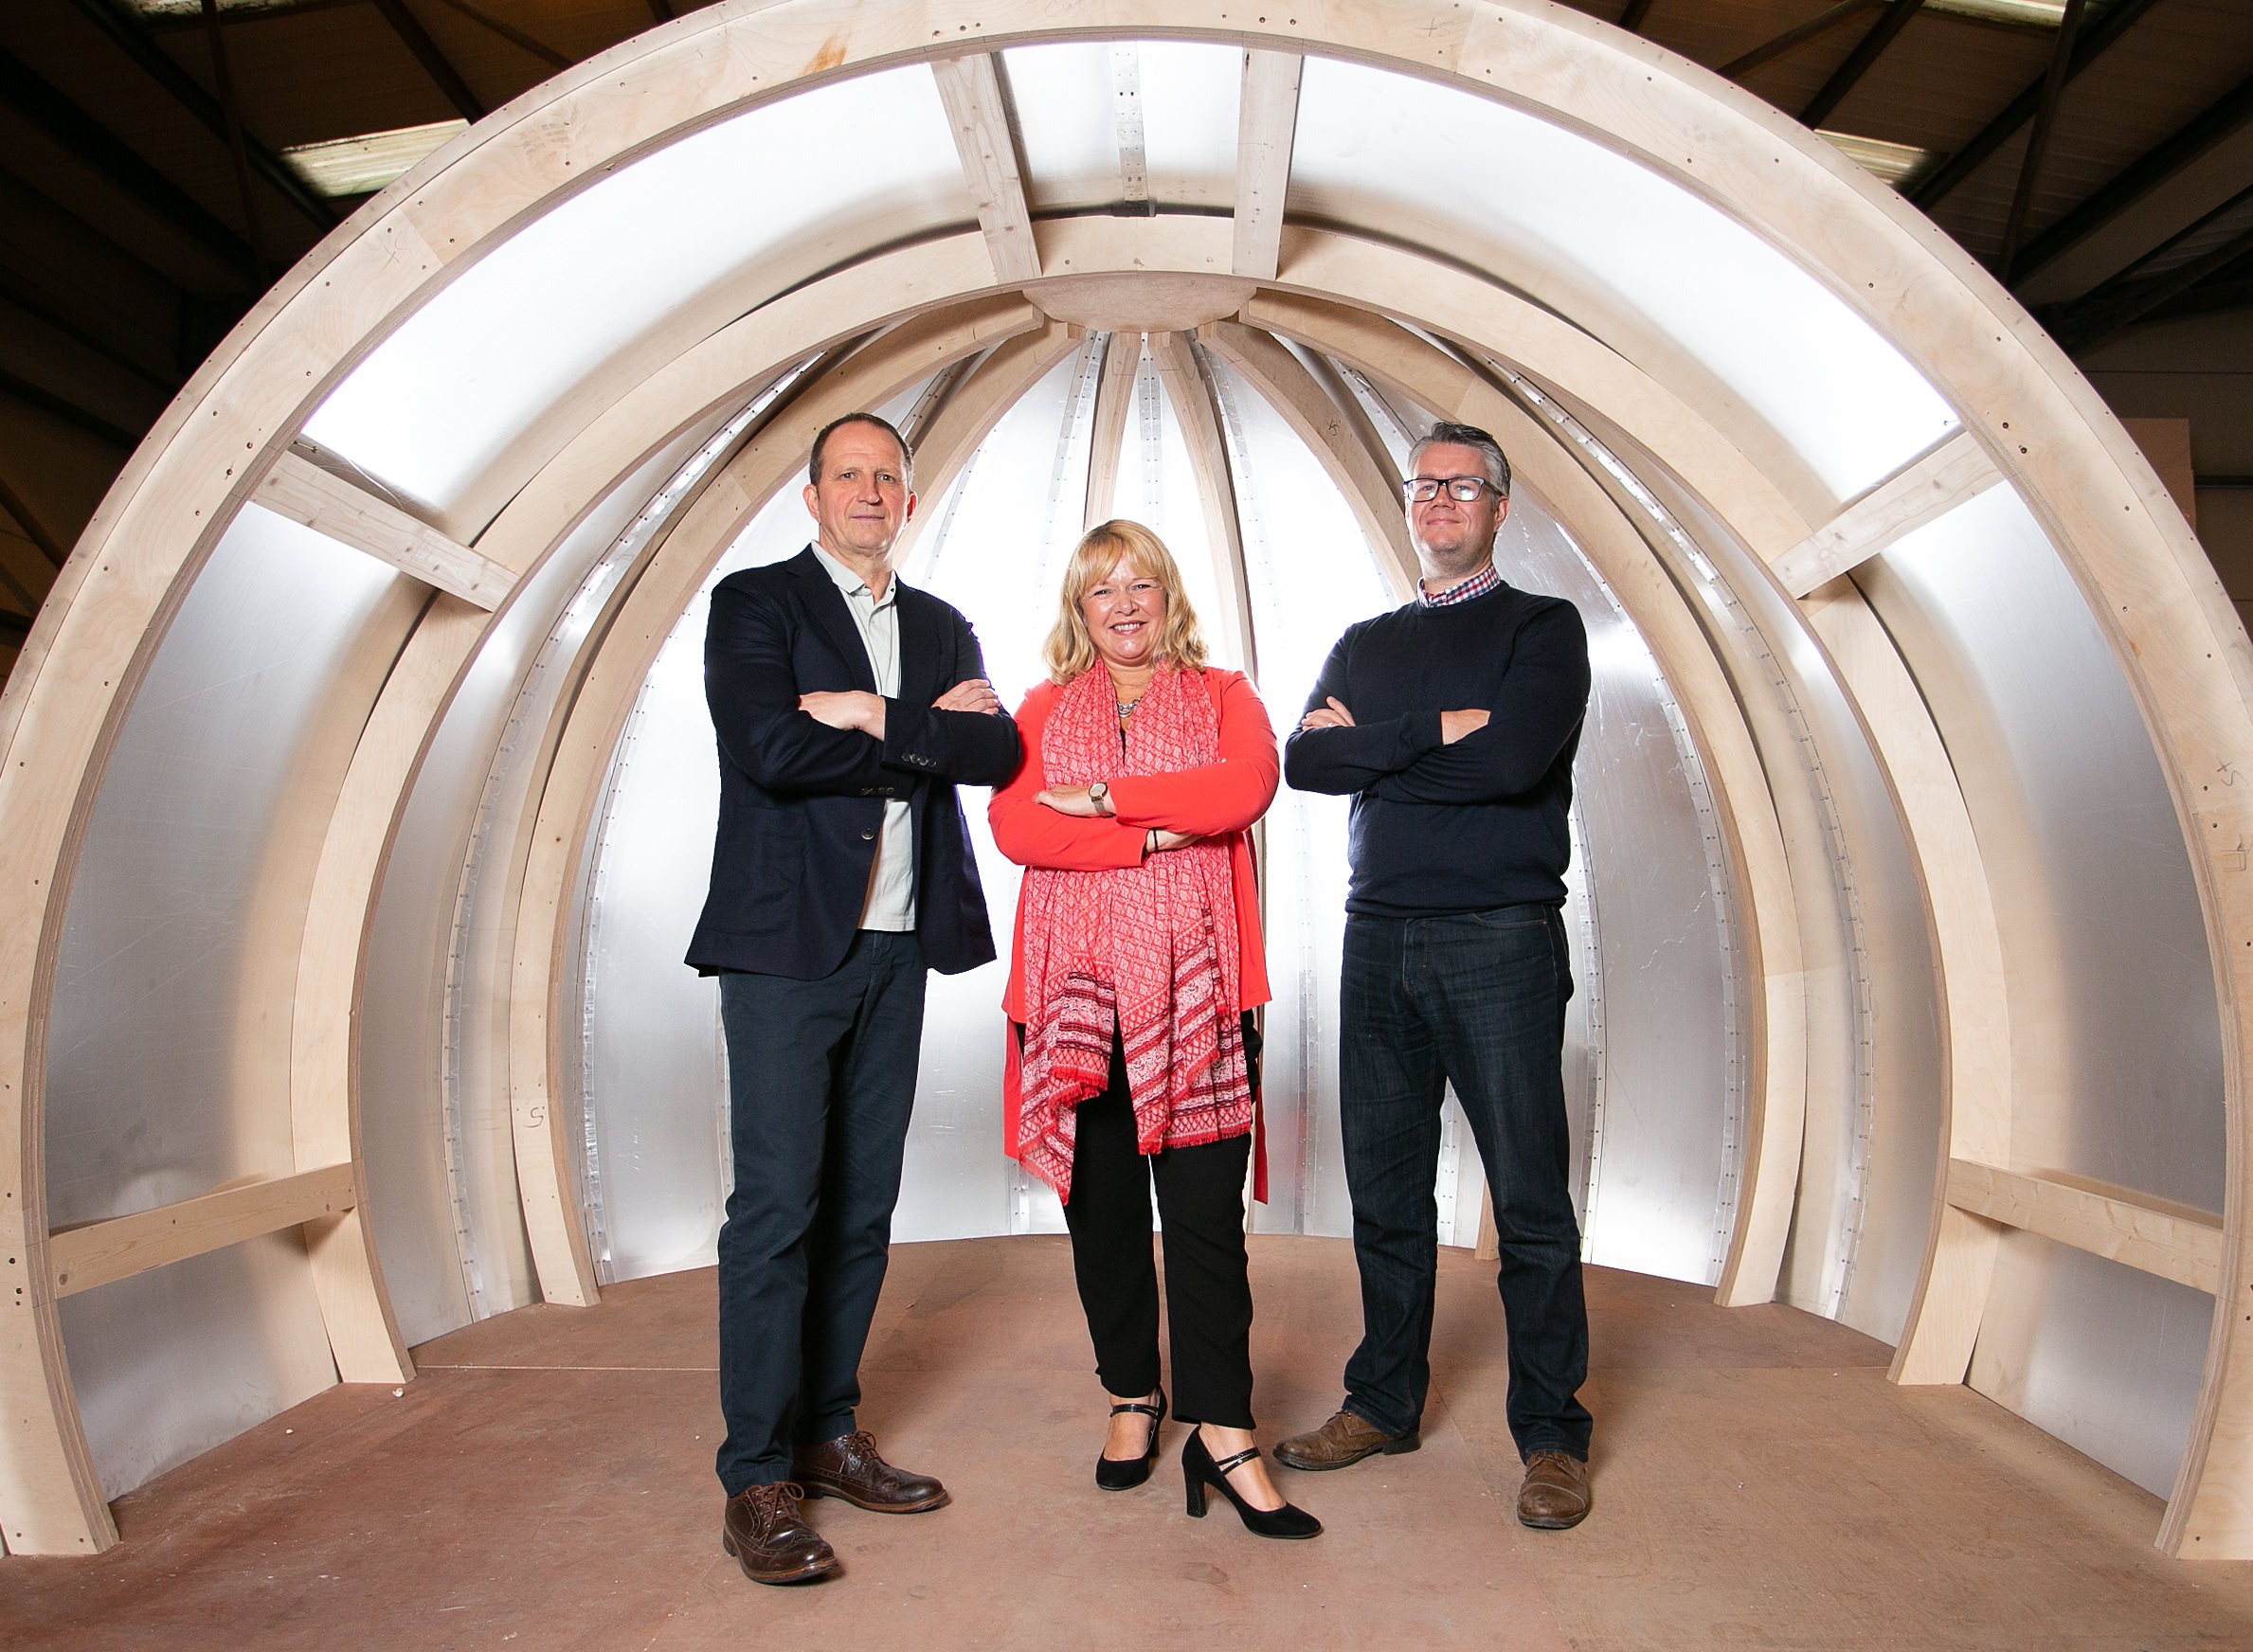 NI Company with major stake in the Glamping Market